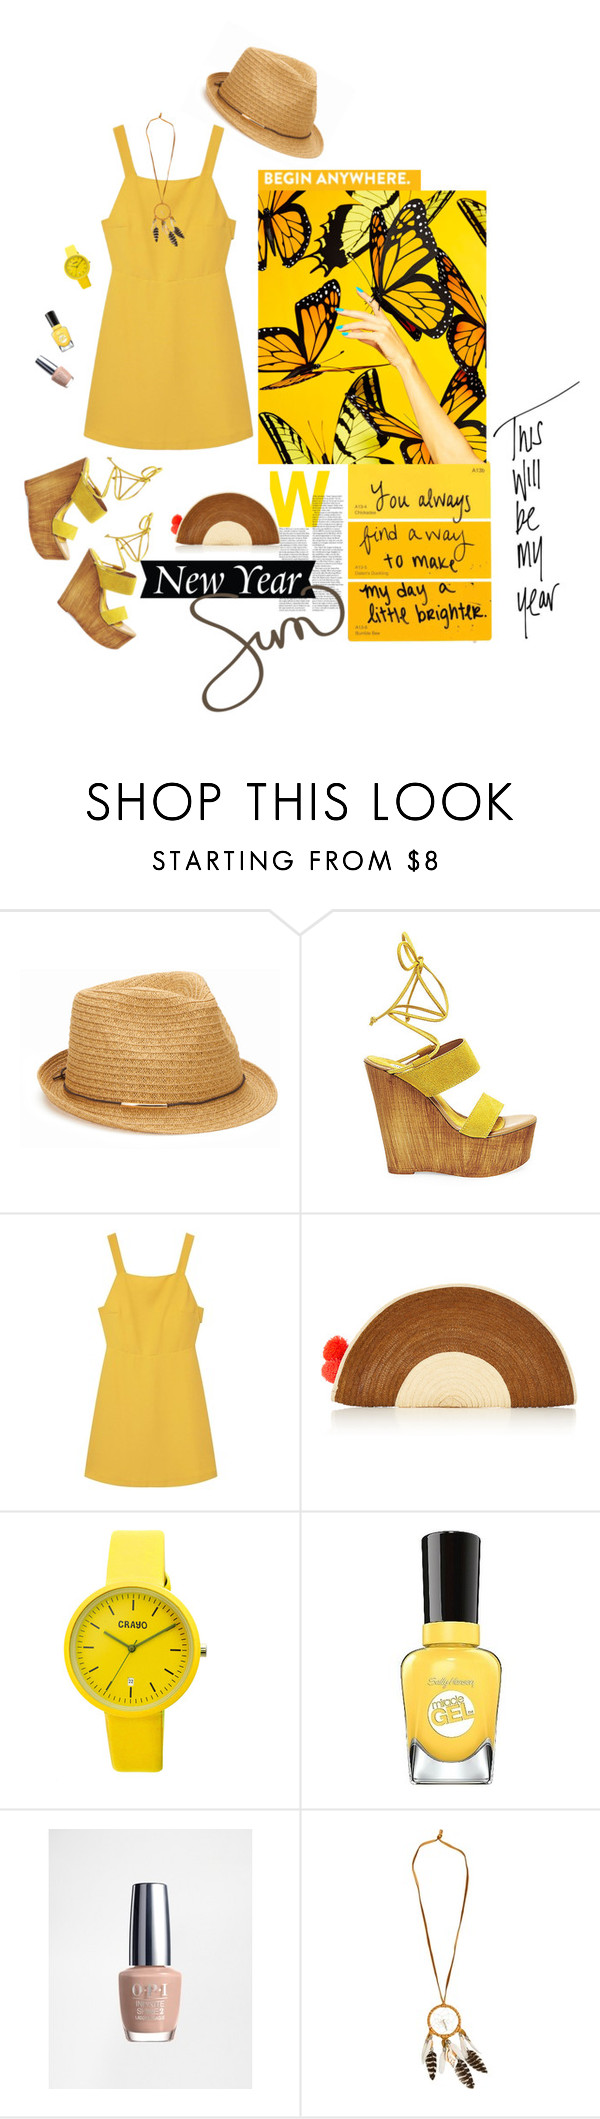 """Beginning the year with sunshine and hope"" by mountainrose ❤ liked on Polyvore featuring San Diego Hat Co., Steve Madden, MANGO, Sophie Anderson, Crayo, Sally Hansen and OPI"